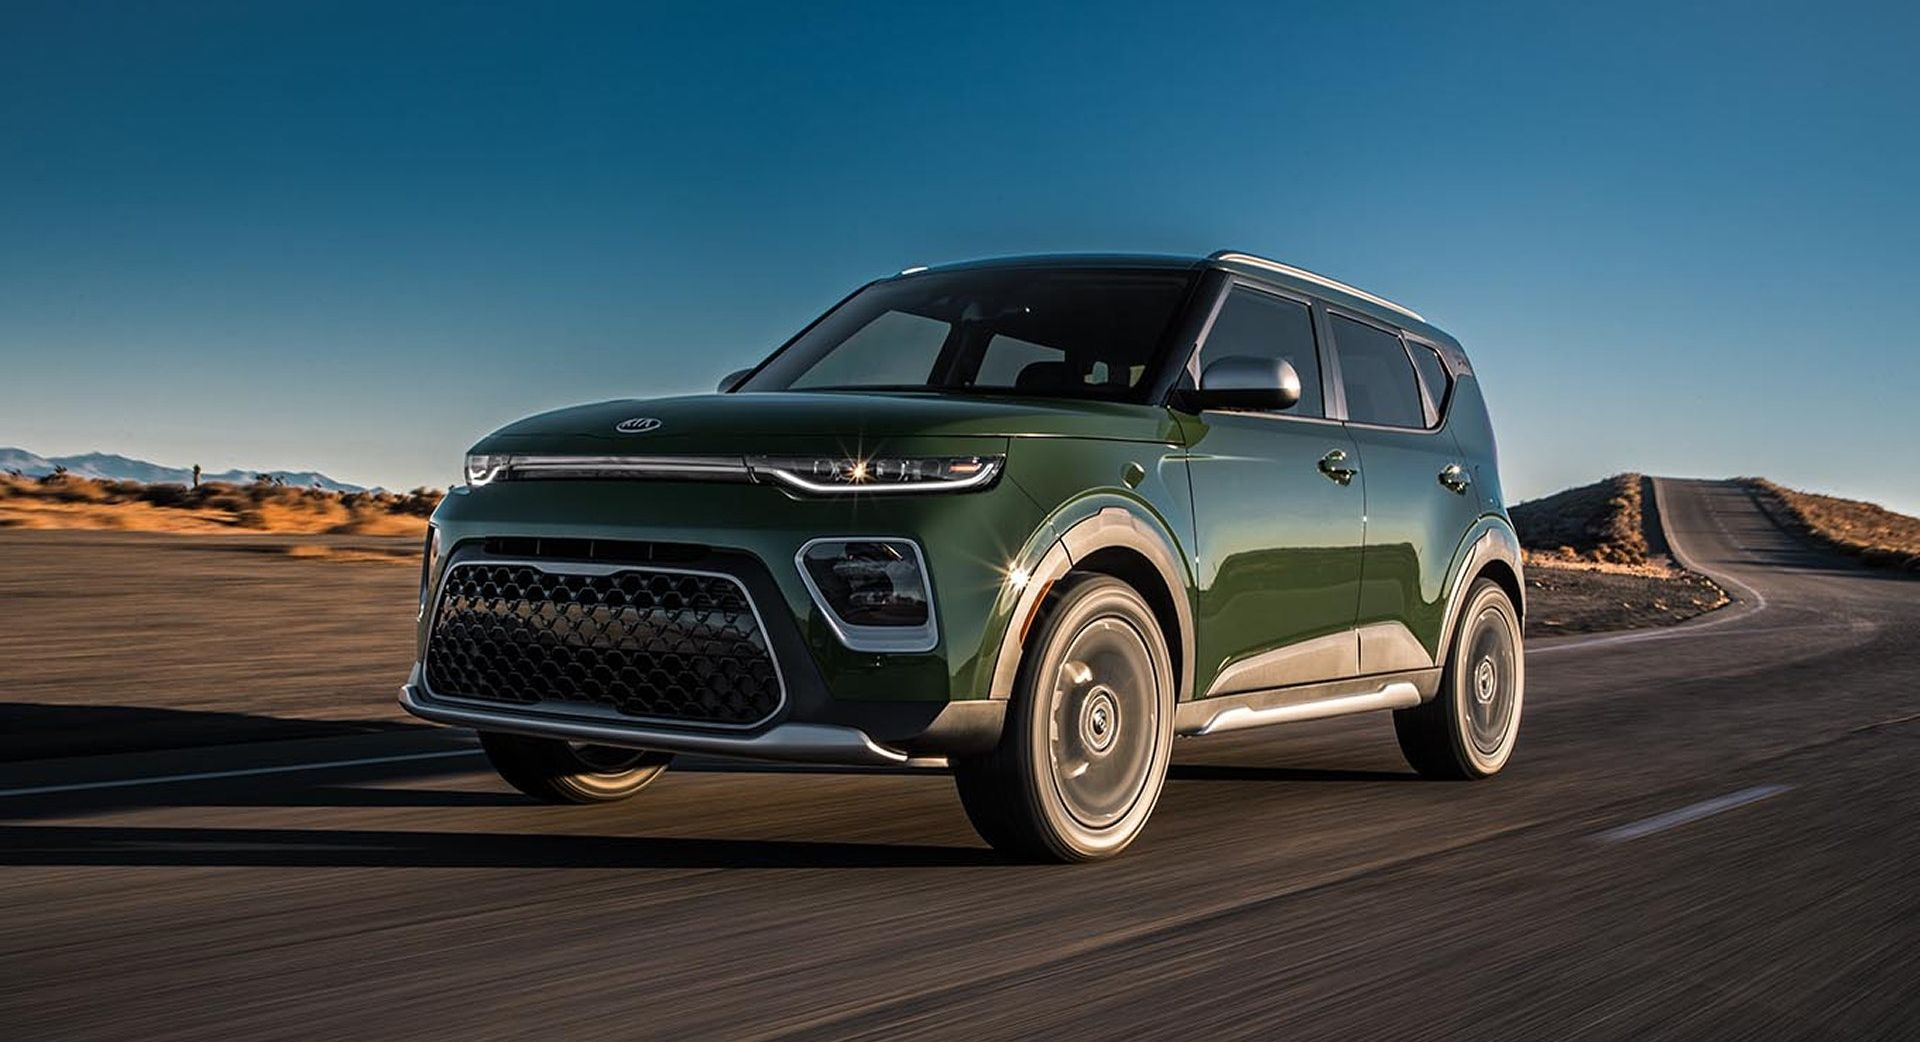 What's New for the 2020 Kia Soul near San Diego, CA